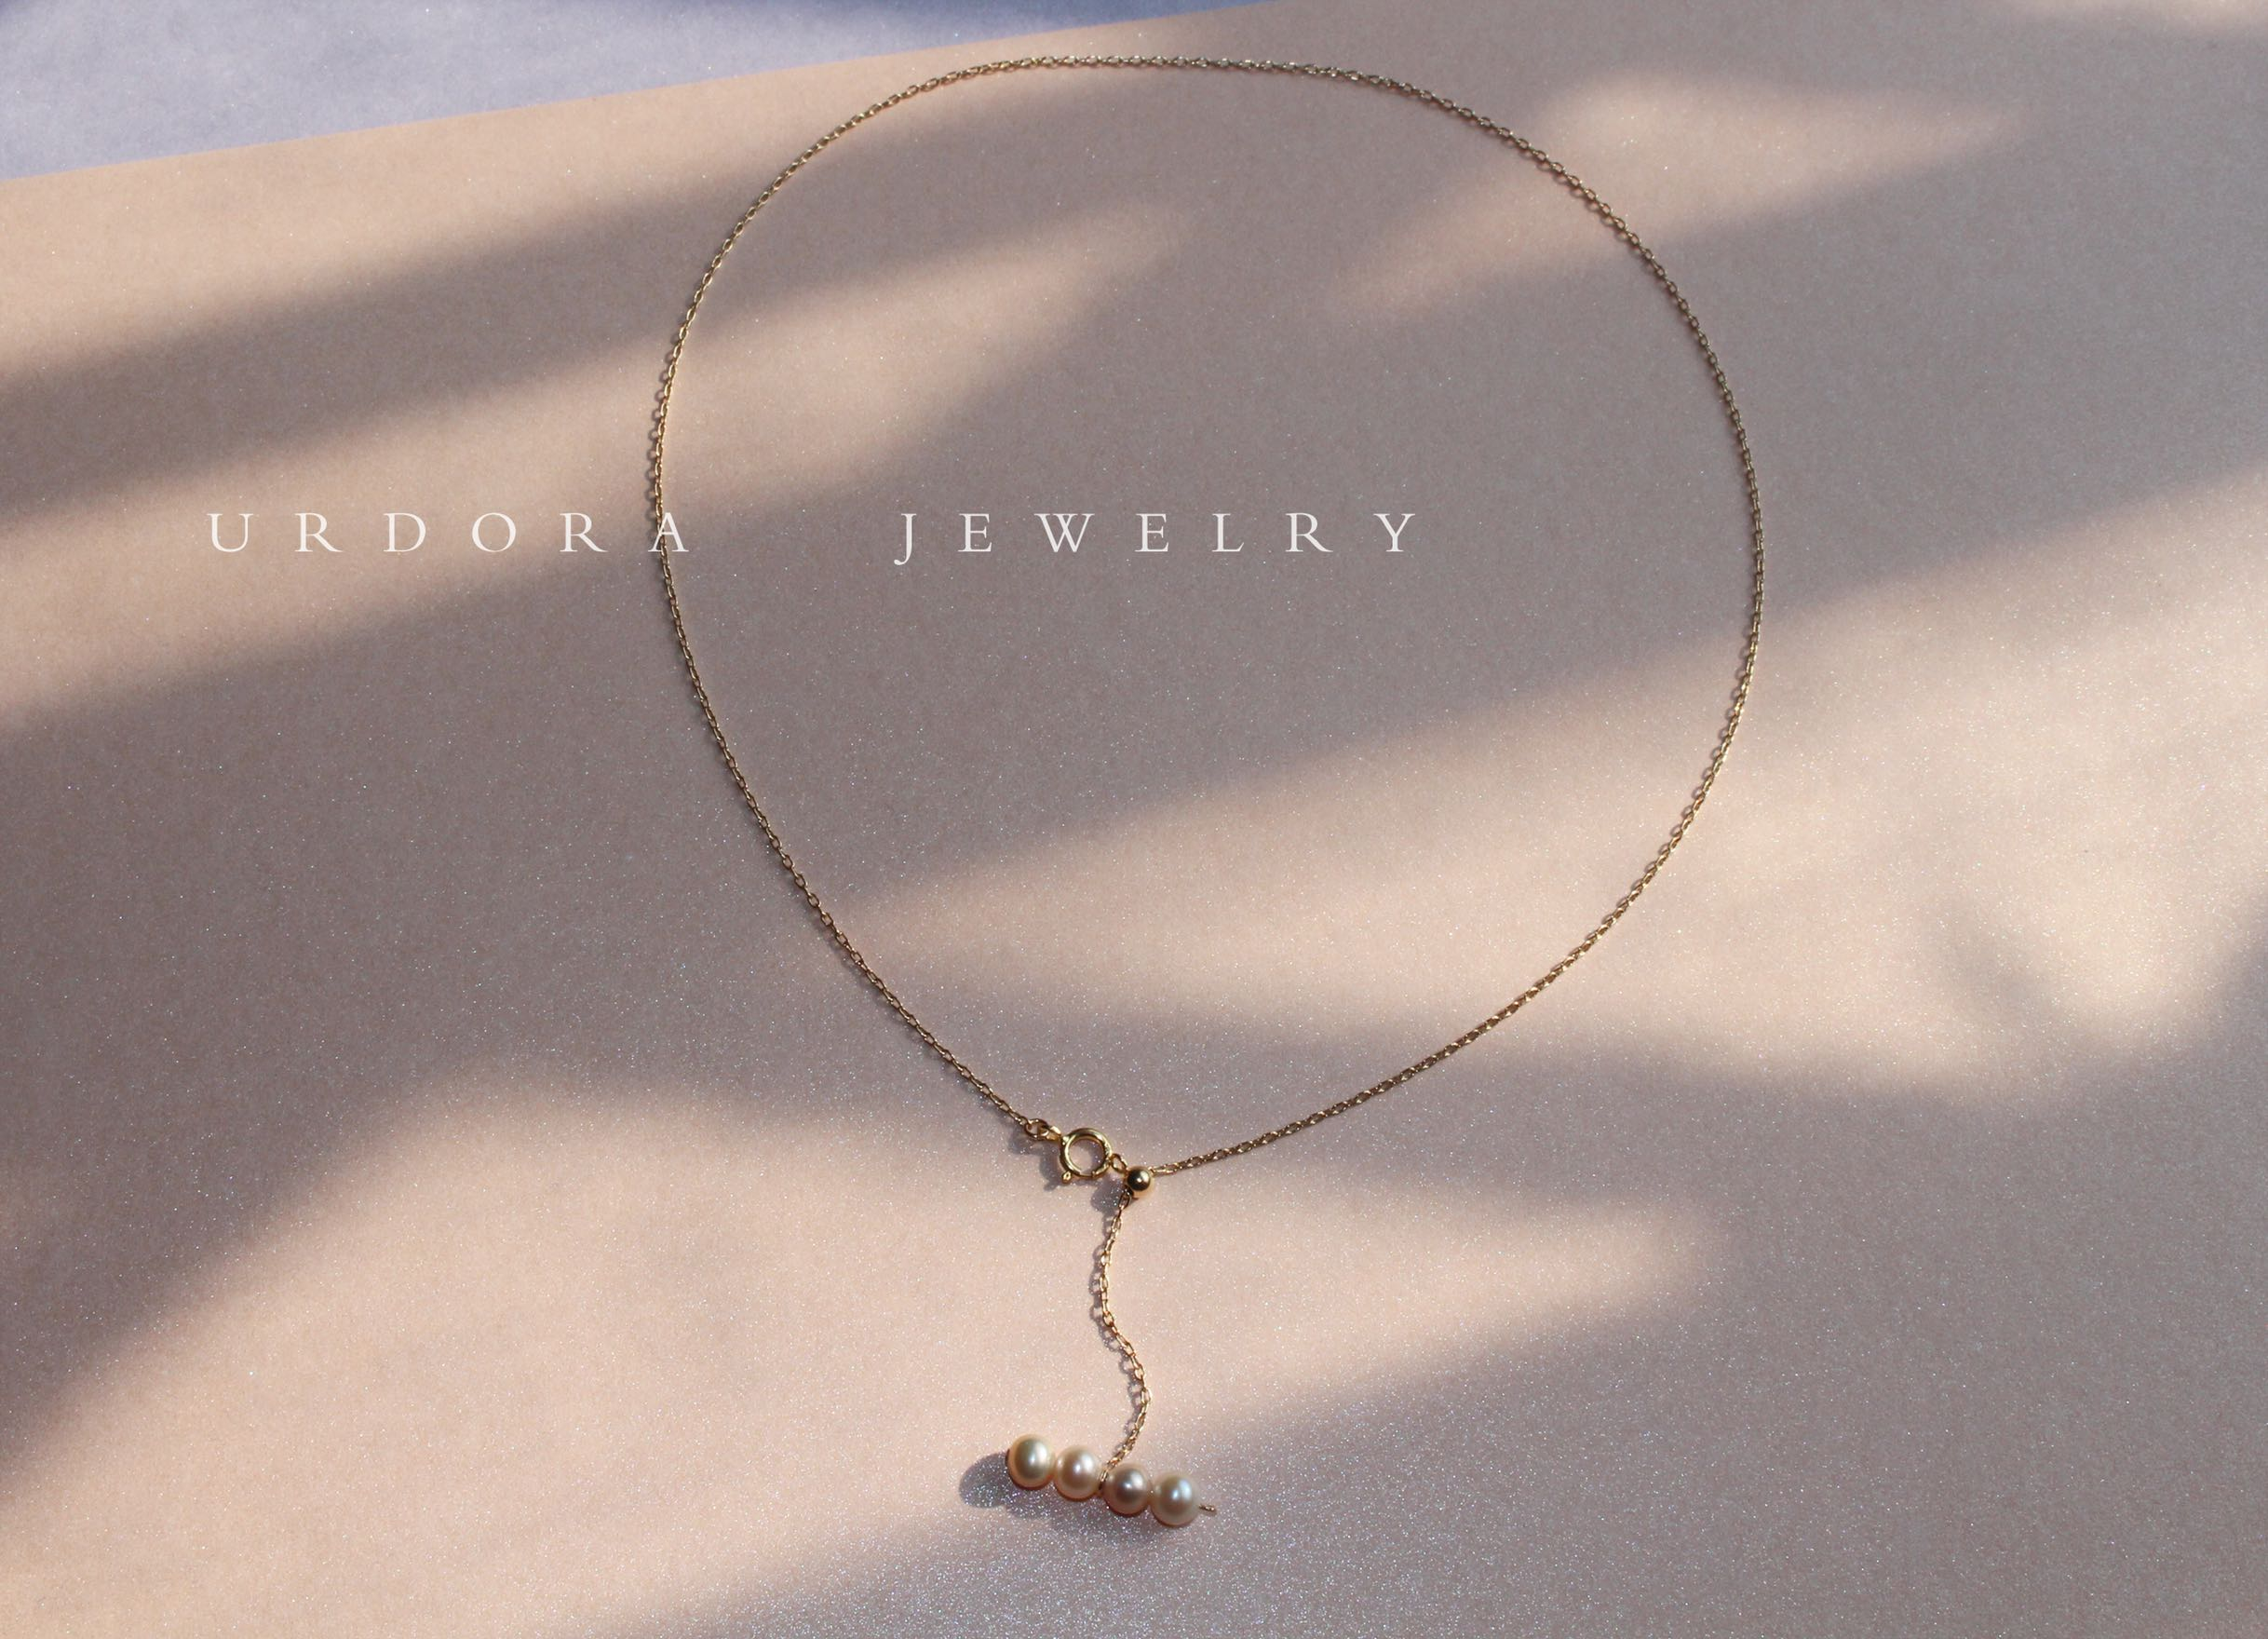 Urdora balance wood pearl necklace clavicle chain natural freshwater pearl minimalist style accessories